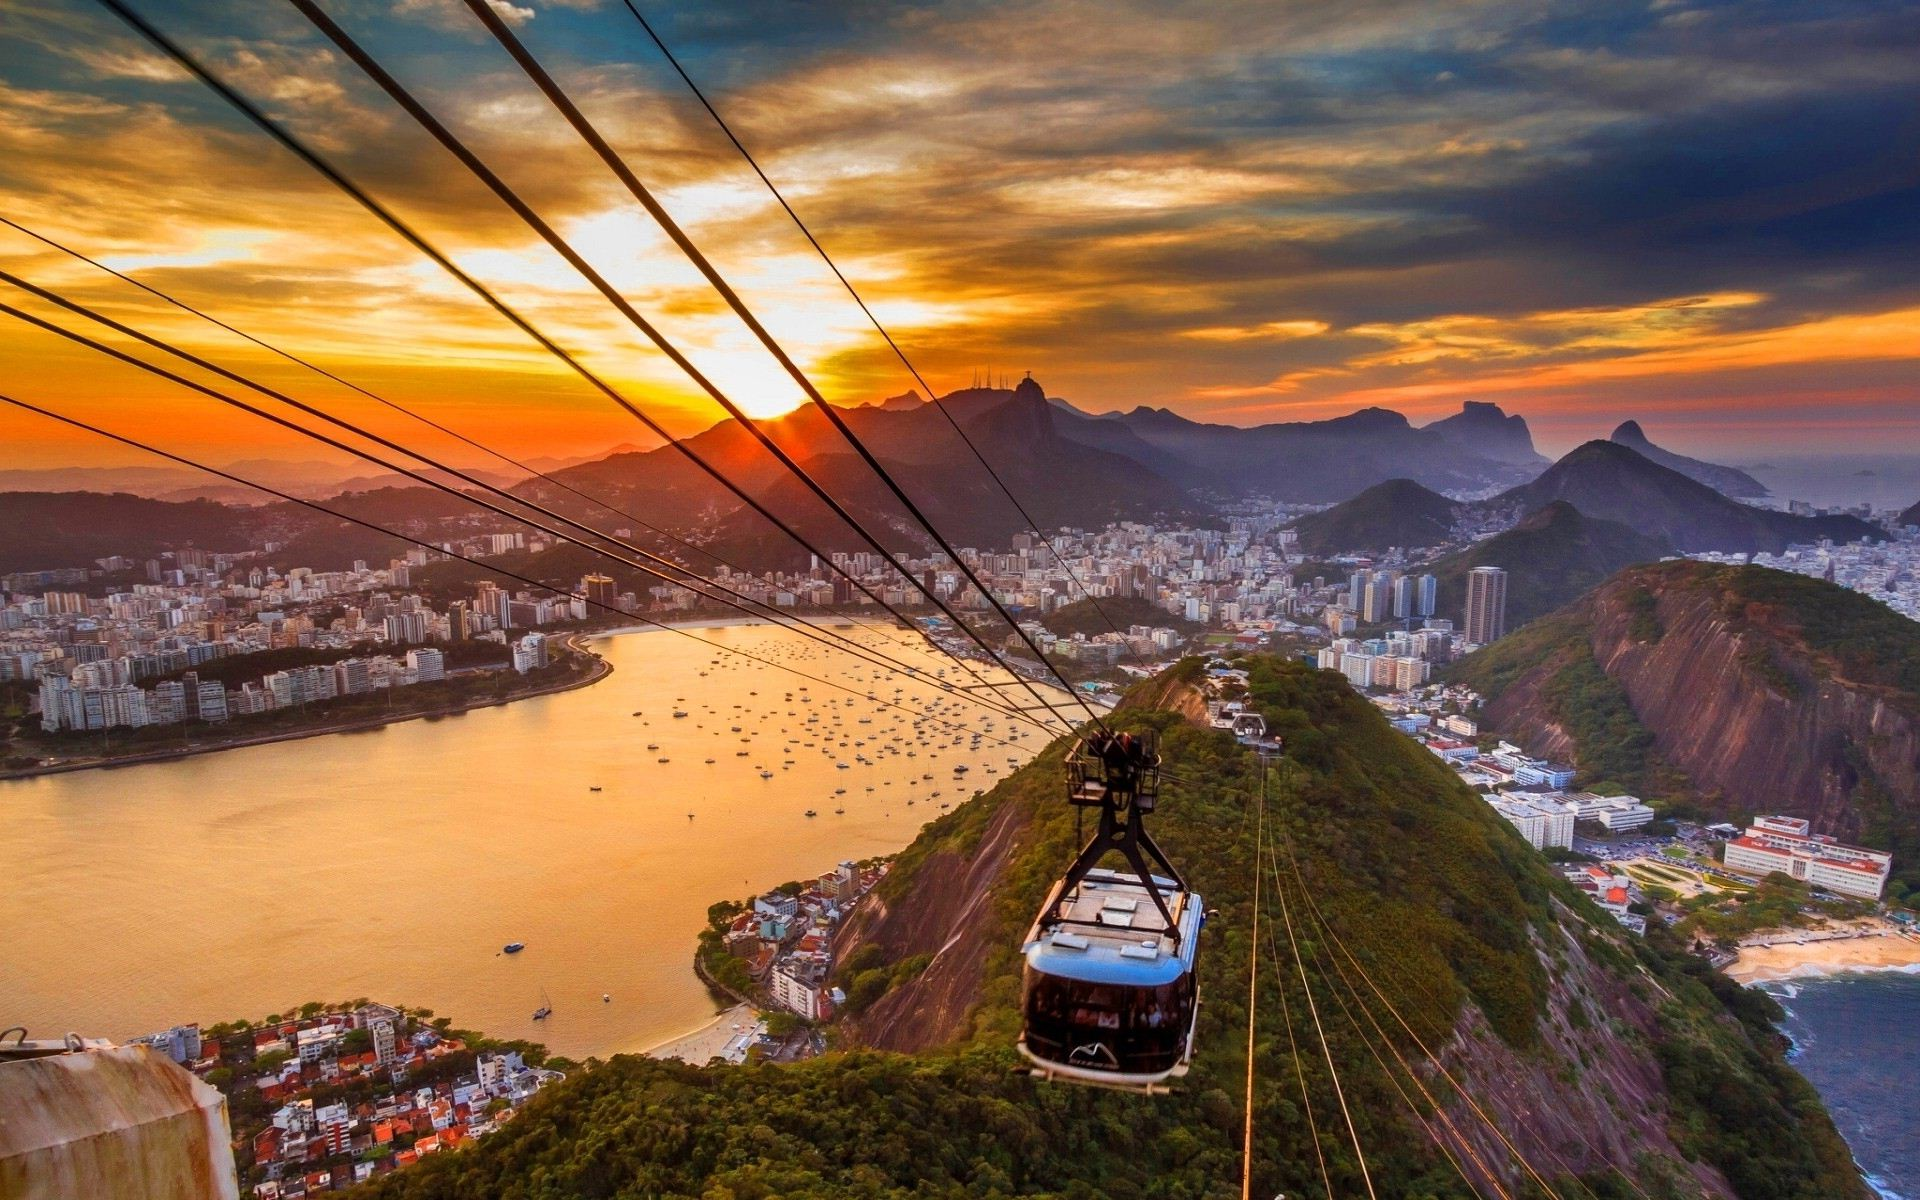 Hd Car Wallpapers Free Download Zip Rio De Janeiro Hd Wallpapers For Desktop Download